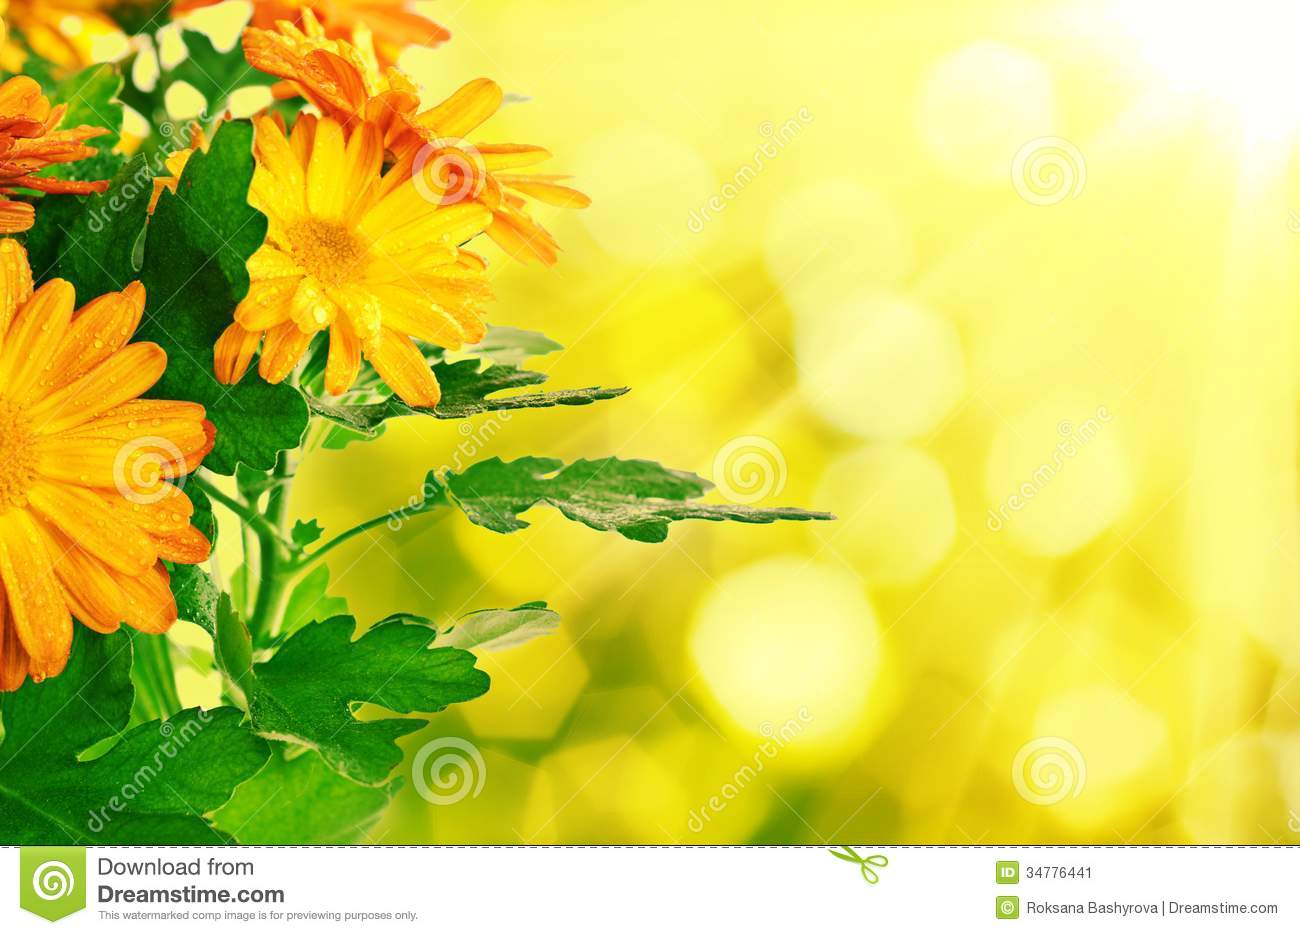 Chrysanthemum floral background stock image image of fall chrysanthemum floral background mightylinksfo